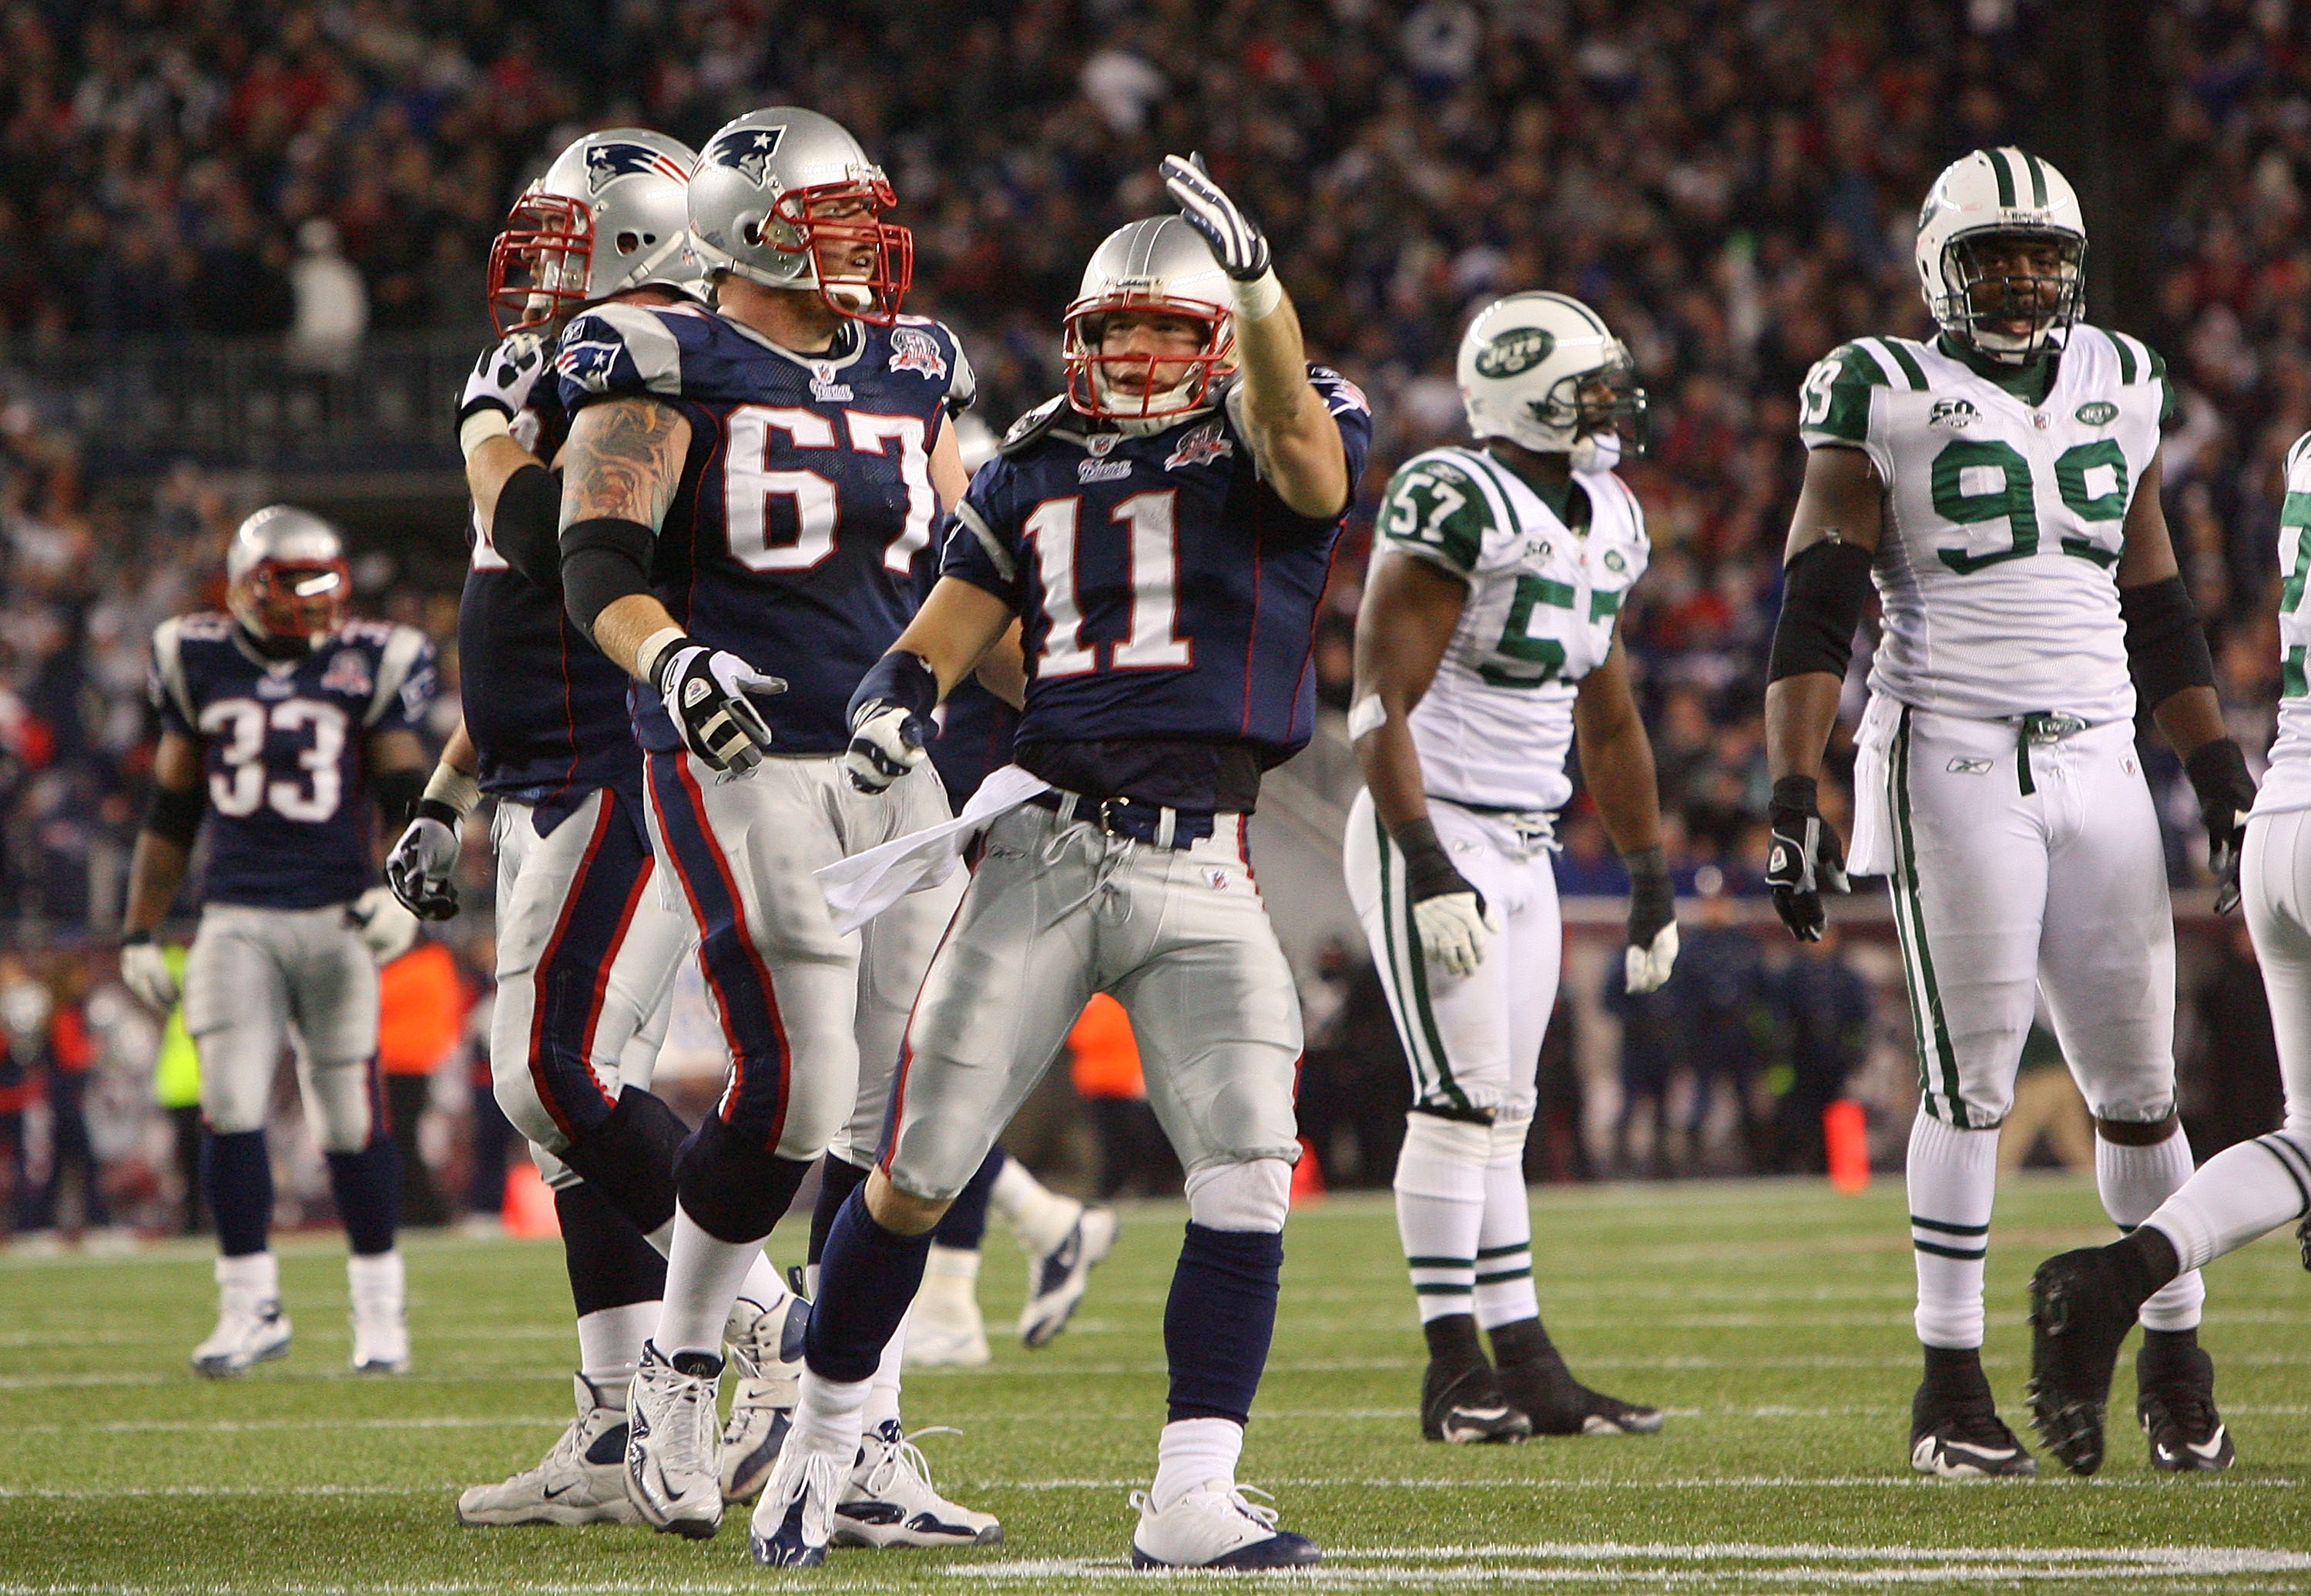 FOXBORO, MA - NOVEMBER 22:  Julian Edelman #11 and Dan Koppen #67 of the New England Patriots react in the fourth quarter against the New York Jets at Gillette Stadium on November 22, 2009 in Foxboro, Massachusetts. The Patriots won 31-14. (Photo by Jim R